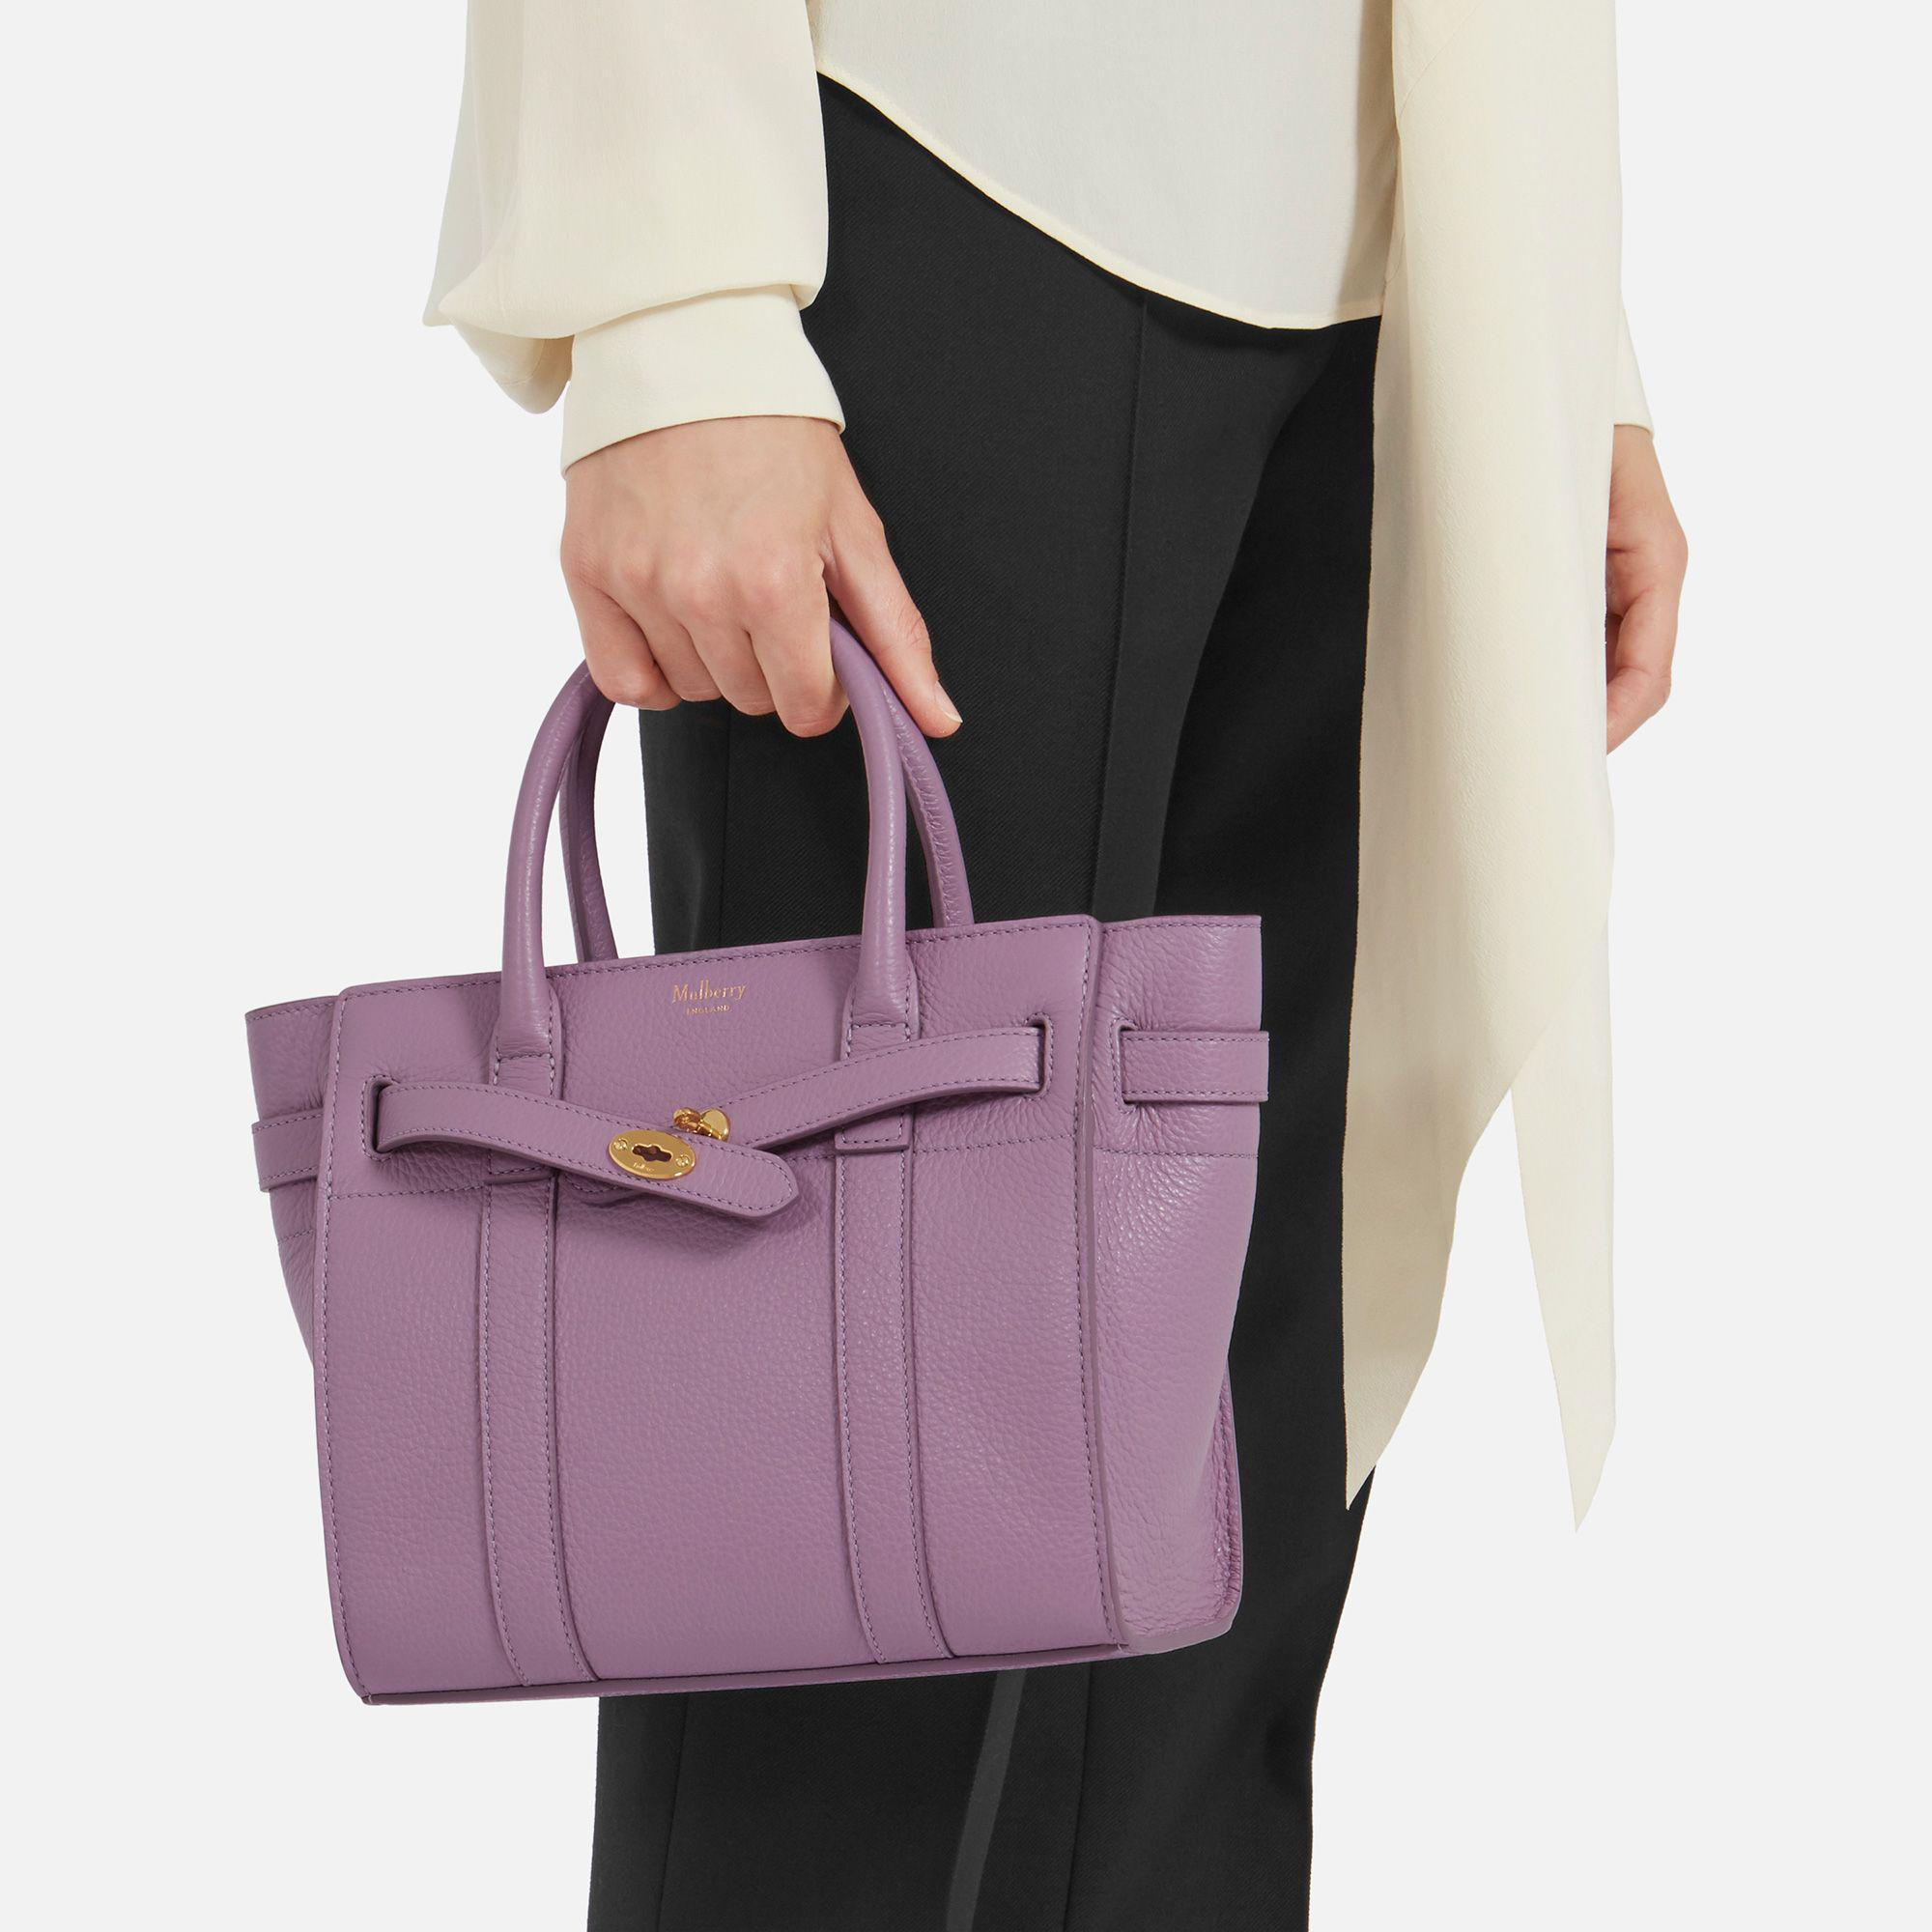 9beaf1e1ab1f italy mulberry black small zipped bayswater lyst 1466d 6c22d  sweden  mulberry purple mini zipped bayswater lyst. view fullscreen 7d0ed 490d7